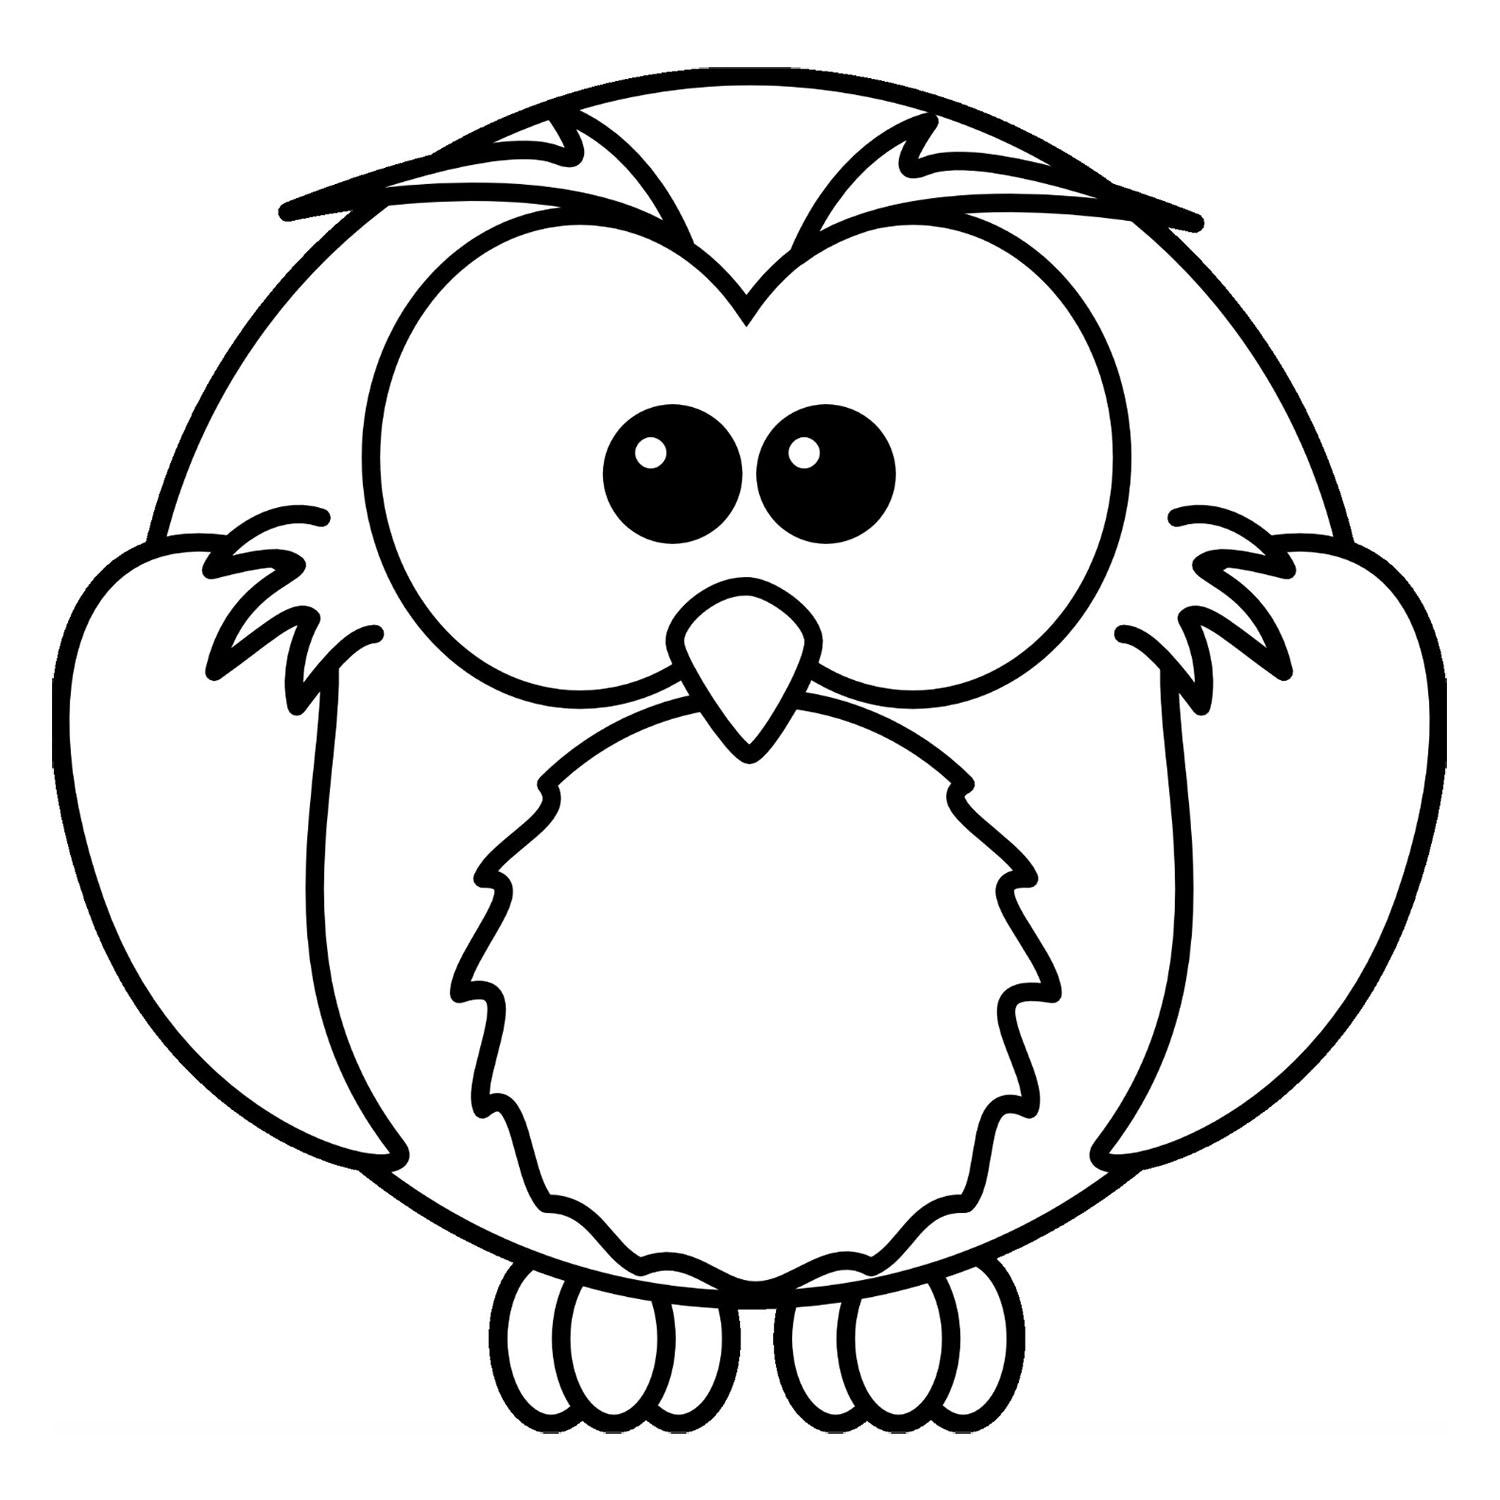 birds to colour and print birds for kids birds kids coloring pages to birds print and colour